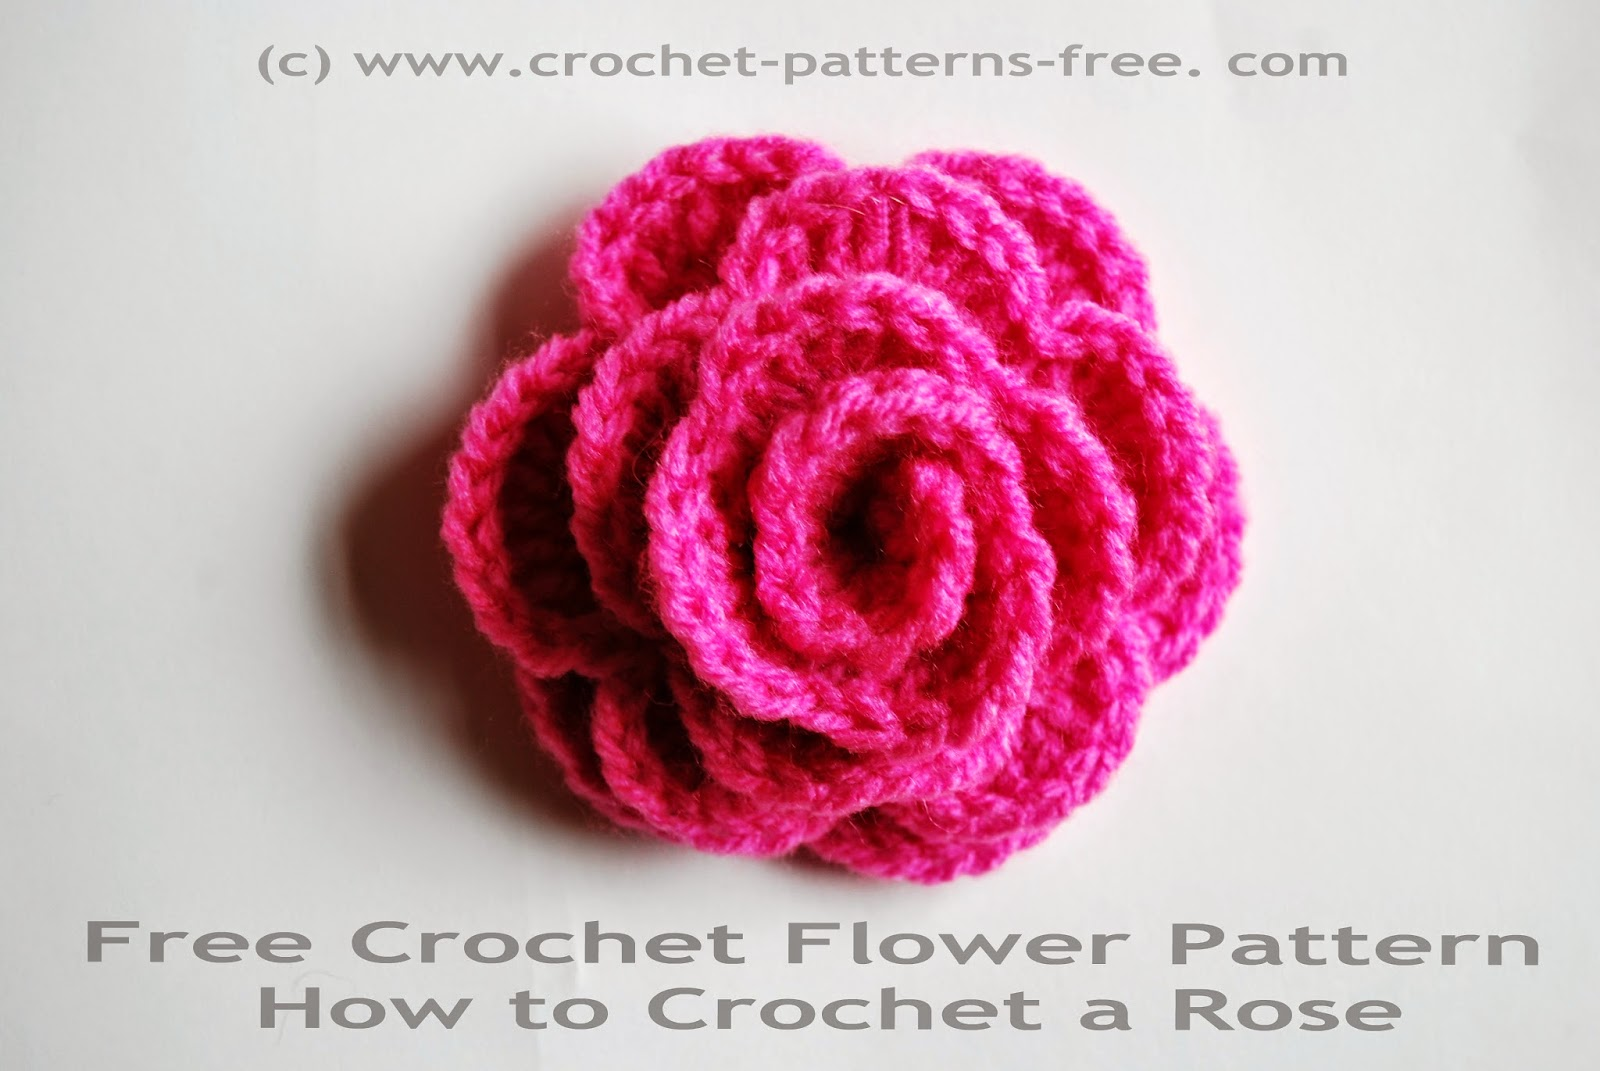 Crochet Flower Pattern How to crochet a rose Free Crochet Patterns ...